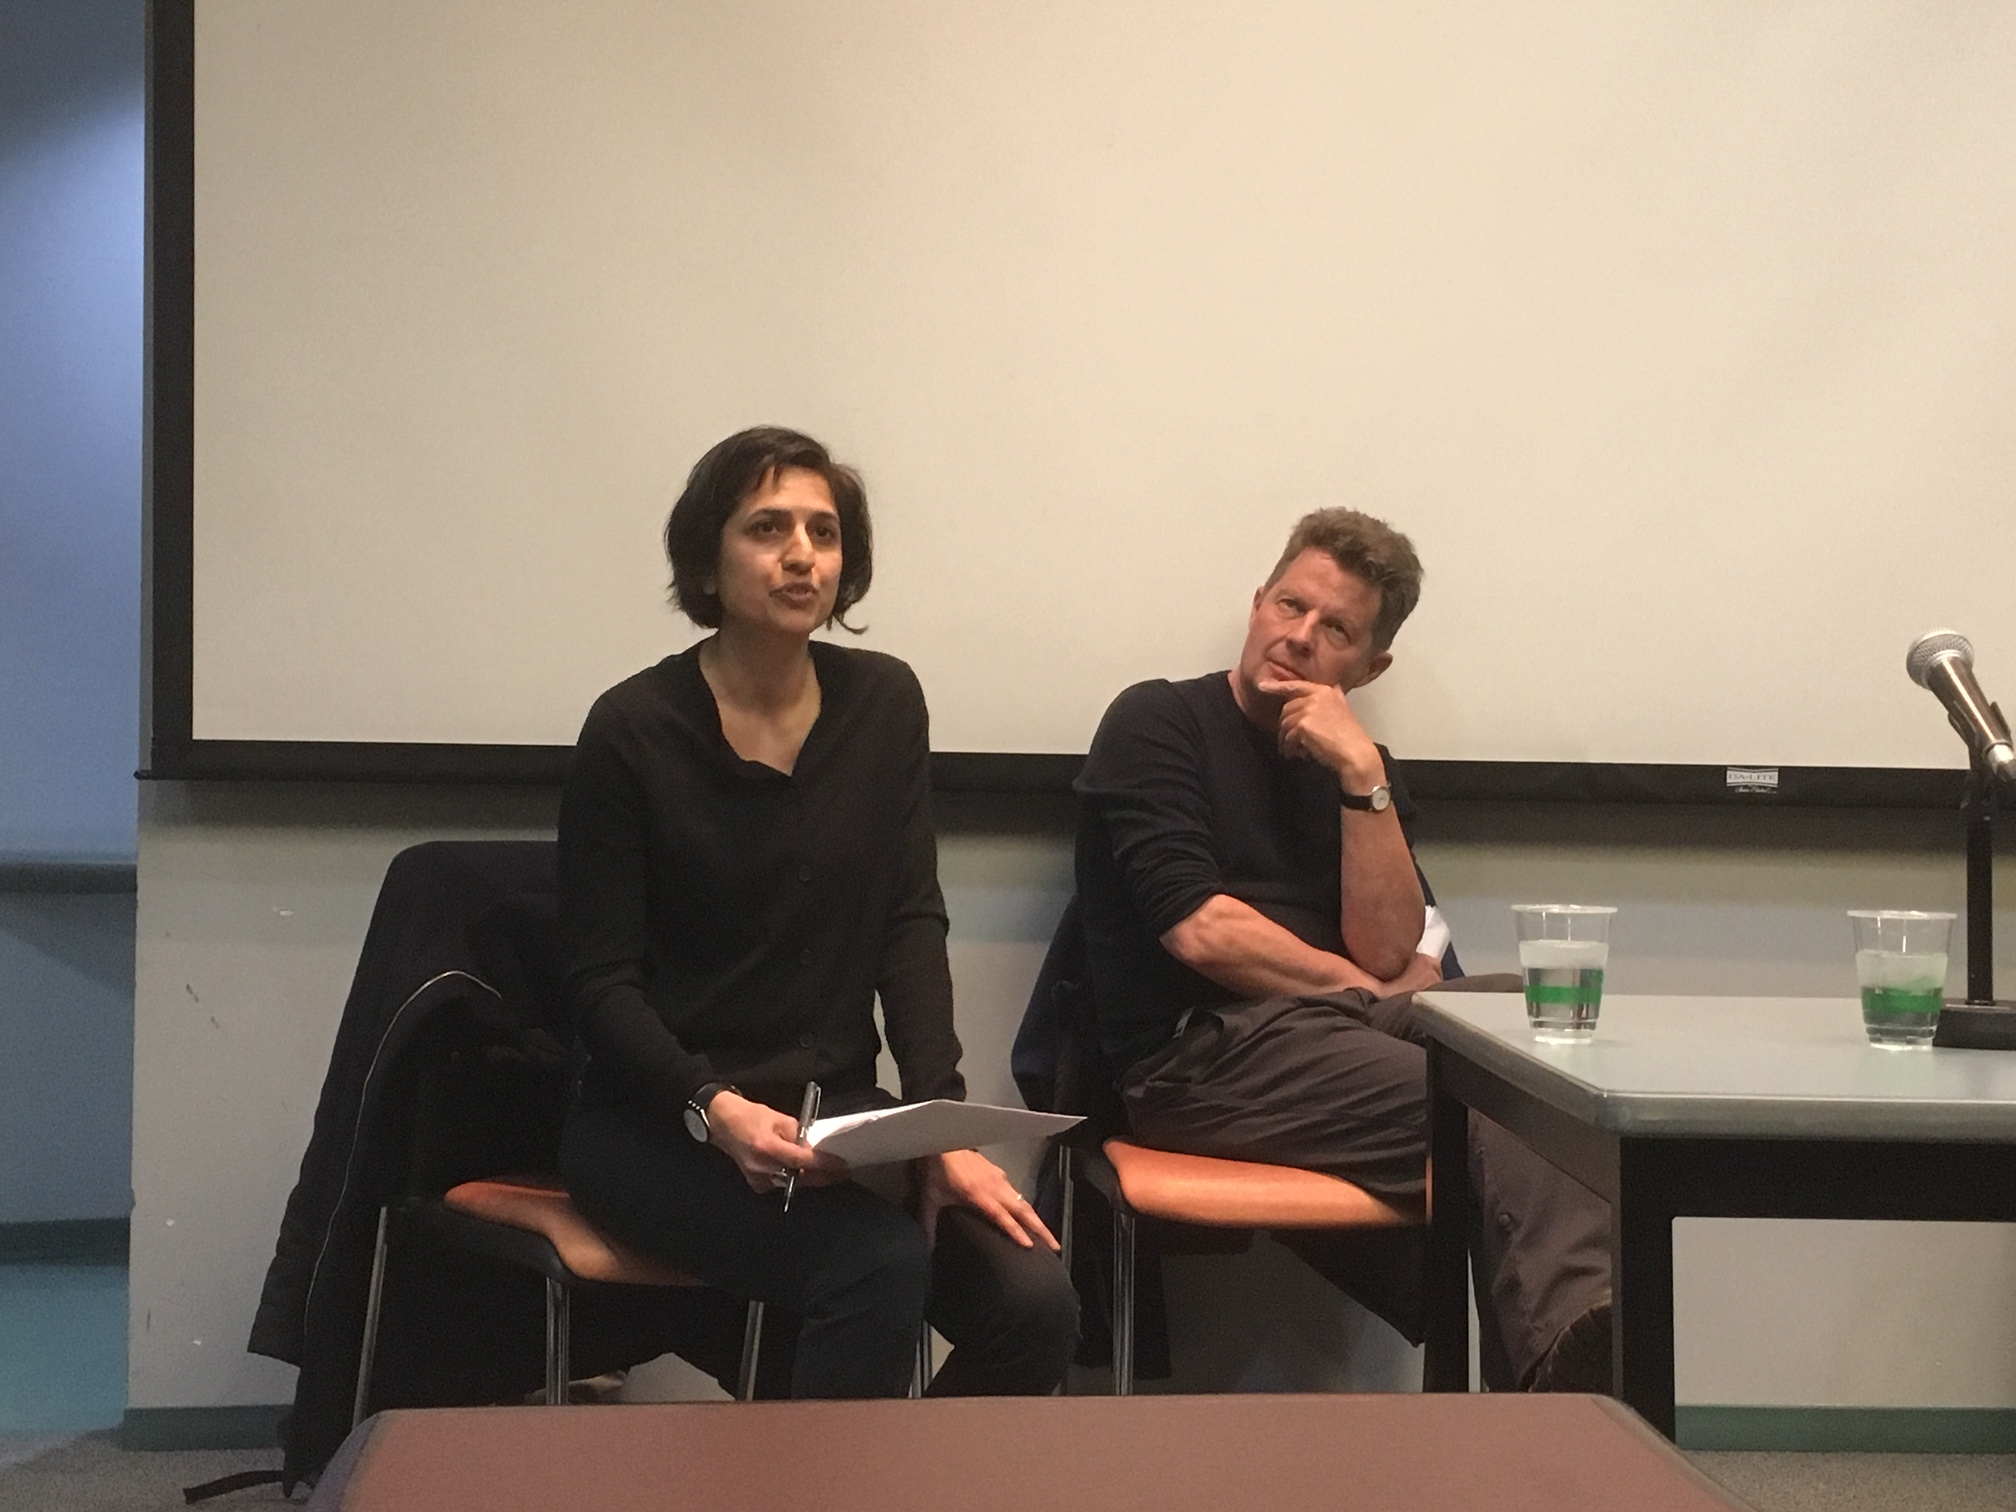 Colonial Lives of Property Panel - SFU Harbour Centre - April 9, 2019 (9).JPG